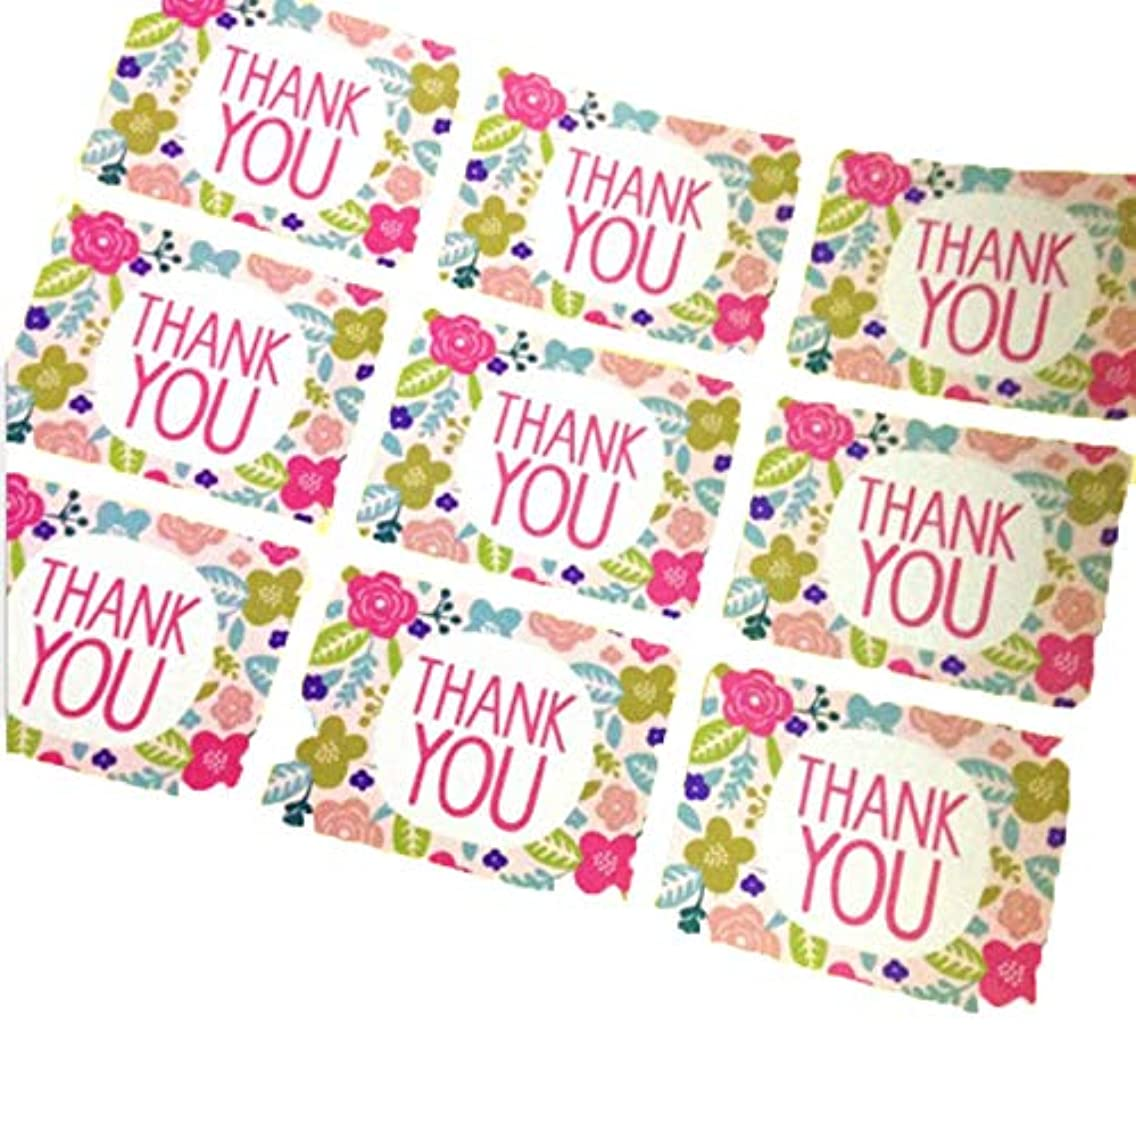 SCHOLMART Thank You Self Adhesive Sealing Cello Cellophane Gift Bags for Bakery, Cookies, Candies, Dessert, Christmas, Buddies Holiday (100 Pack) (Thank You, Stickers 108 Count)